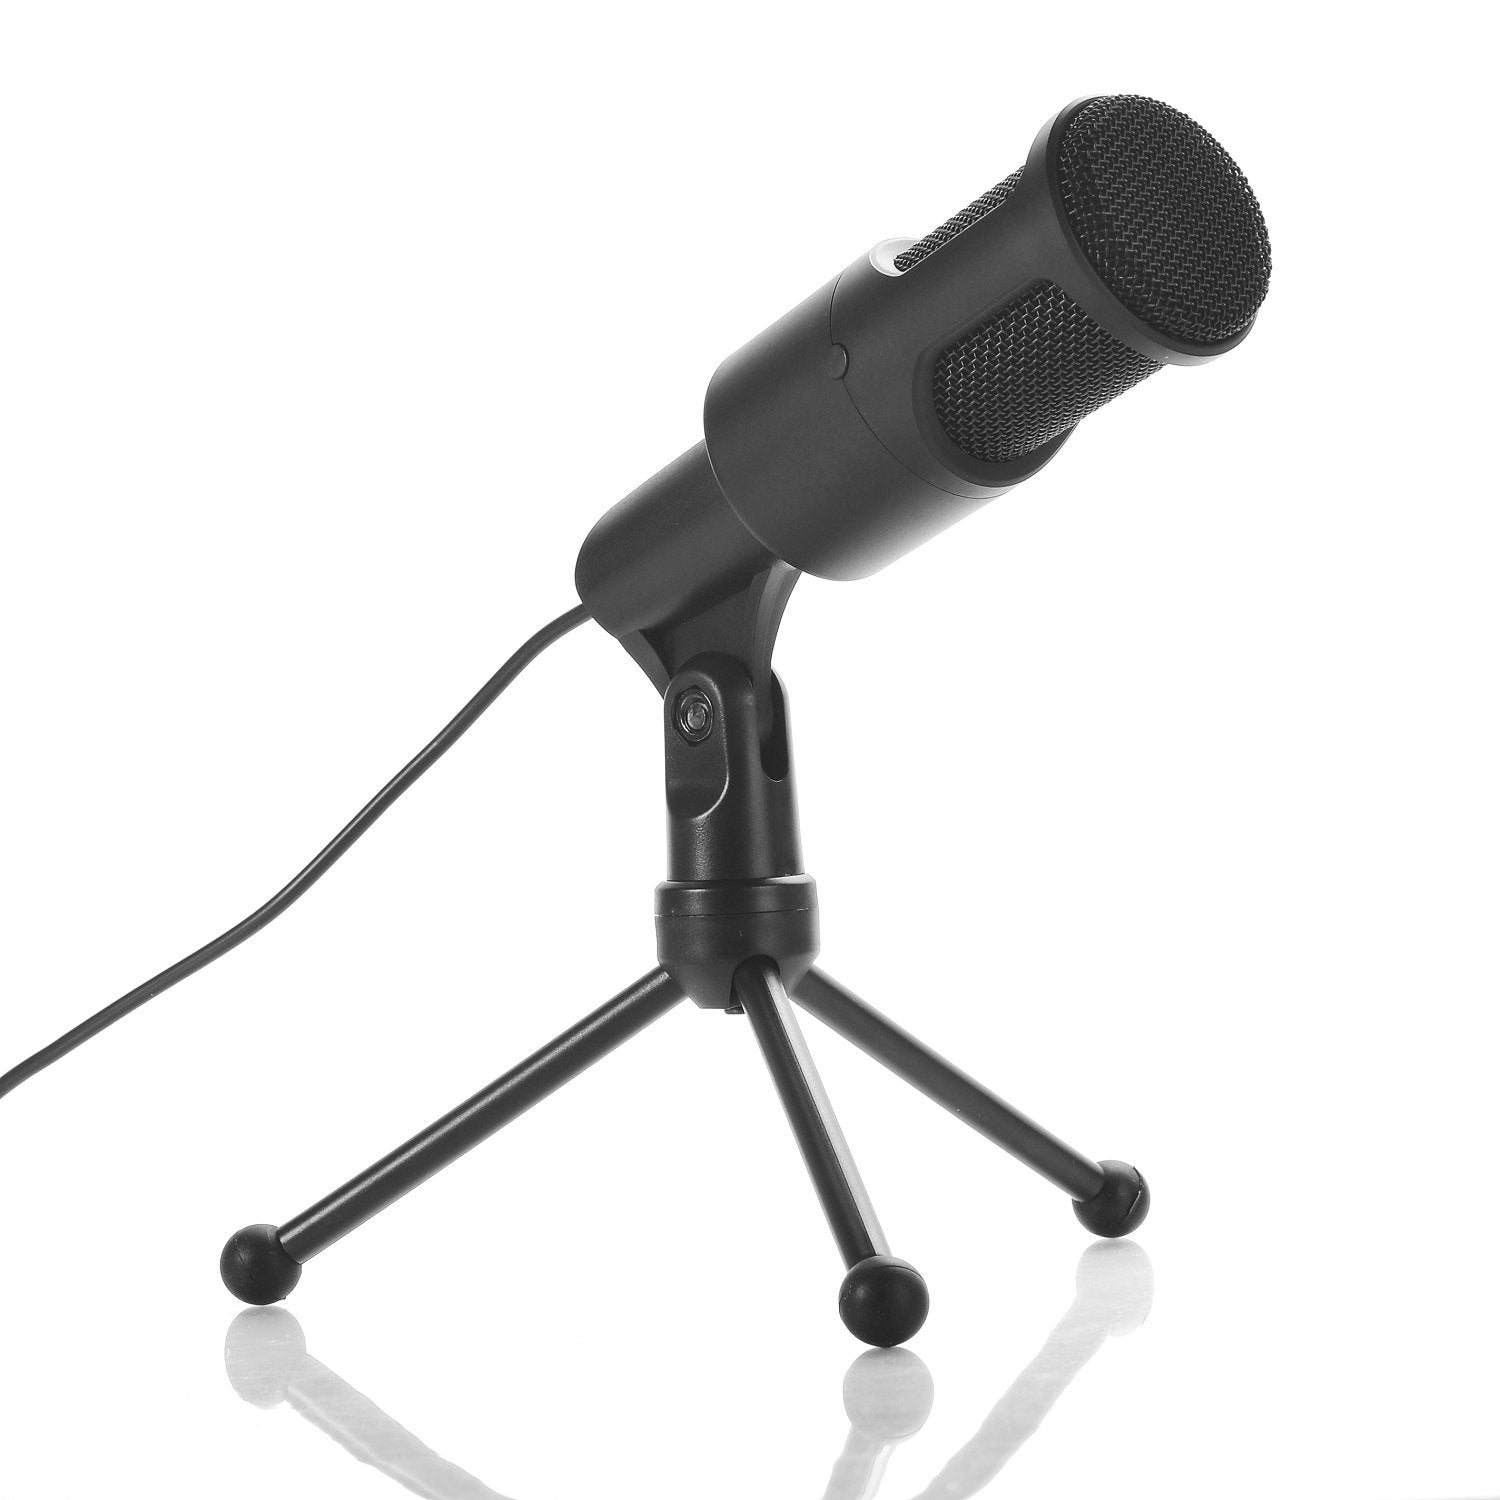 HomeOffice USB Microphone with stand